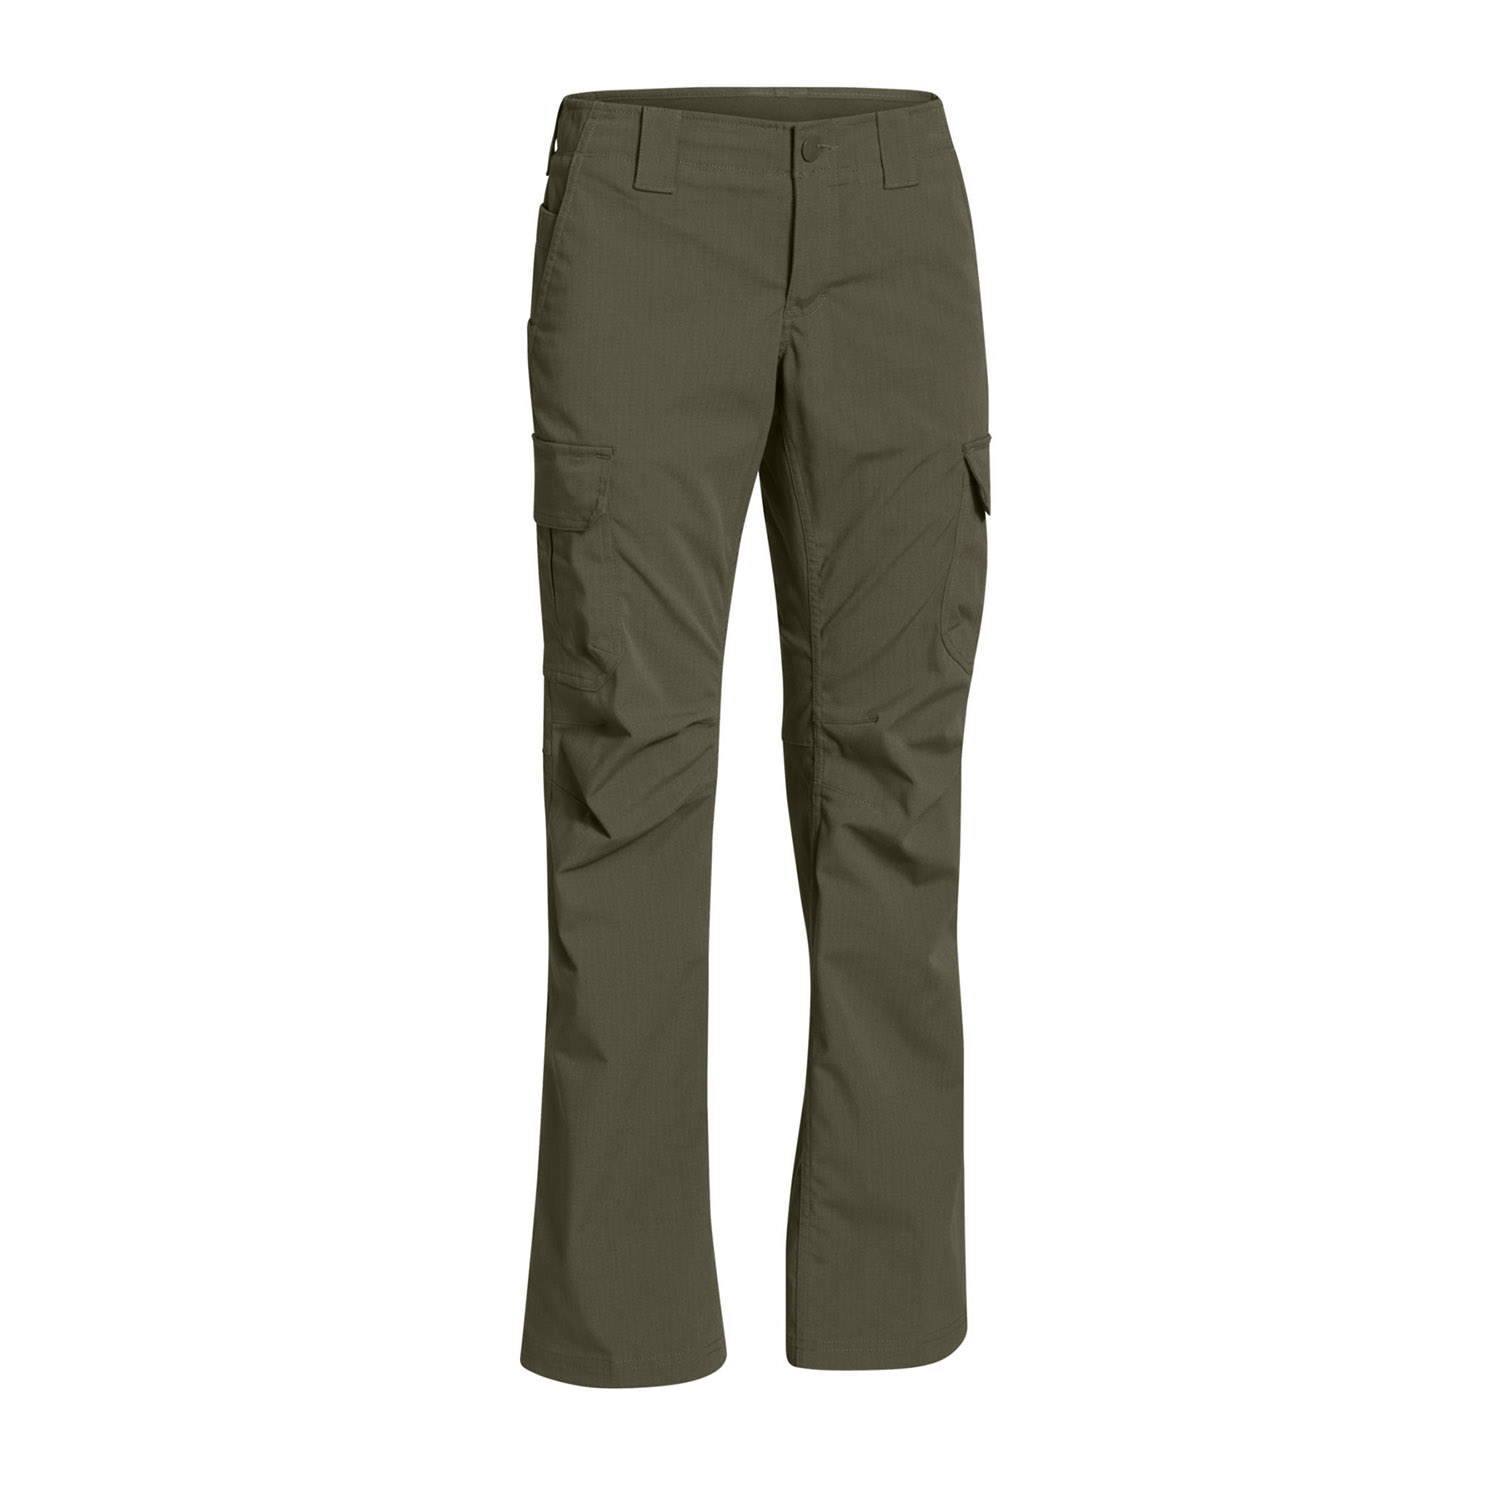 Under Armour Women's Tactical Patrol Pants